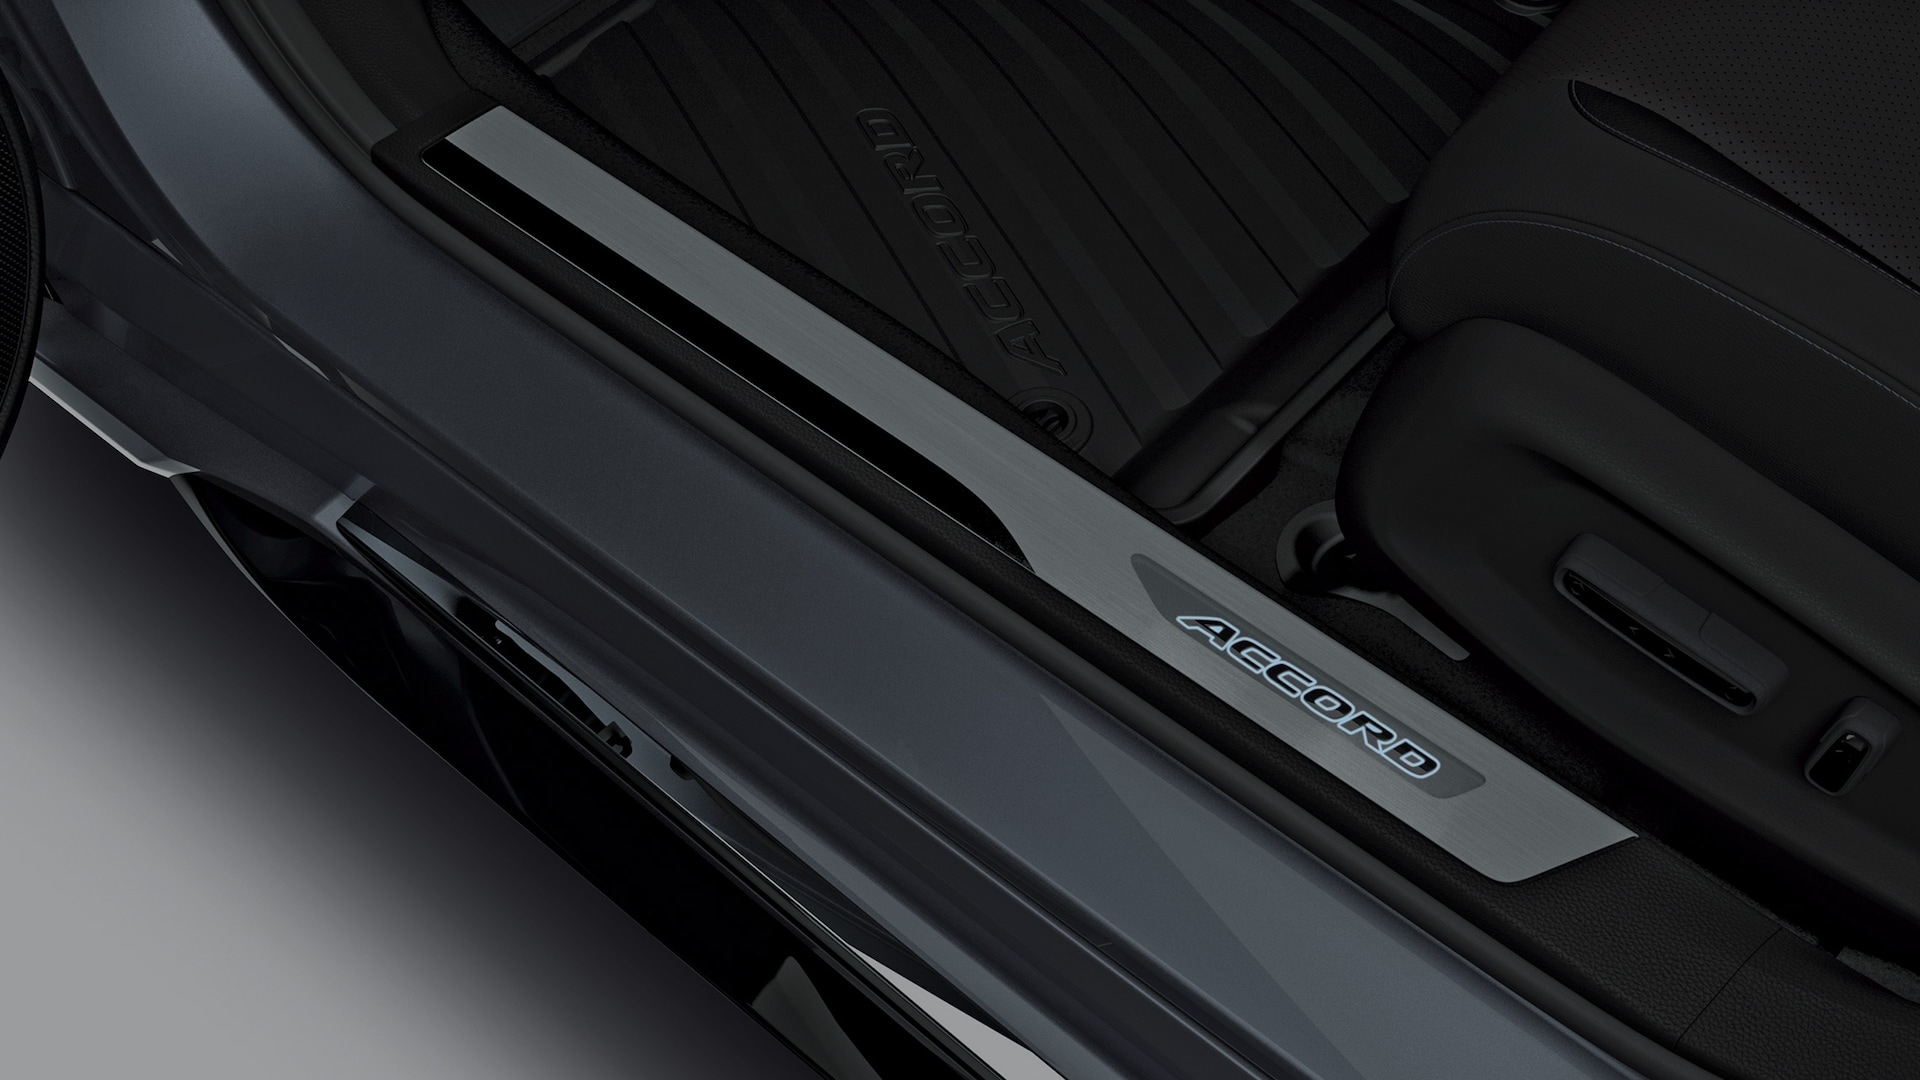 Illuminated door sill trim accessory detail in the 2021 Honda Accord.